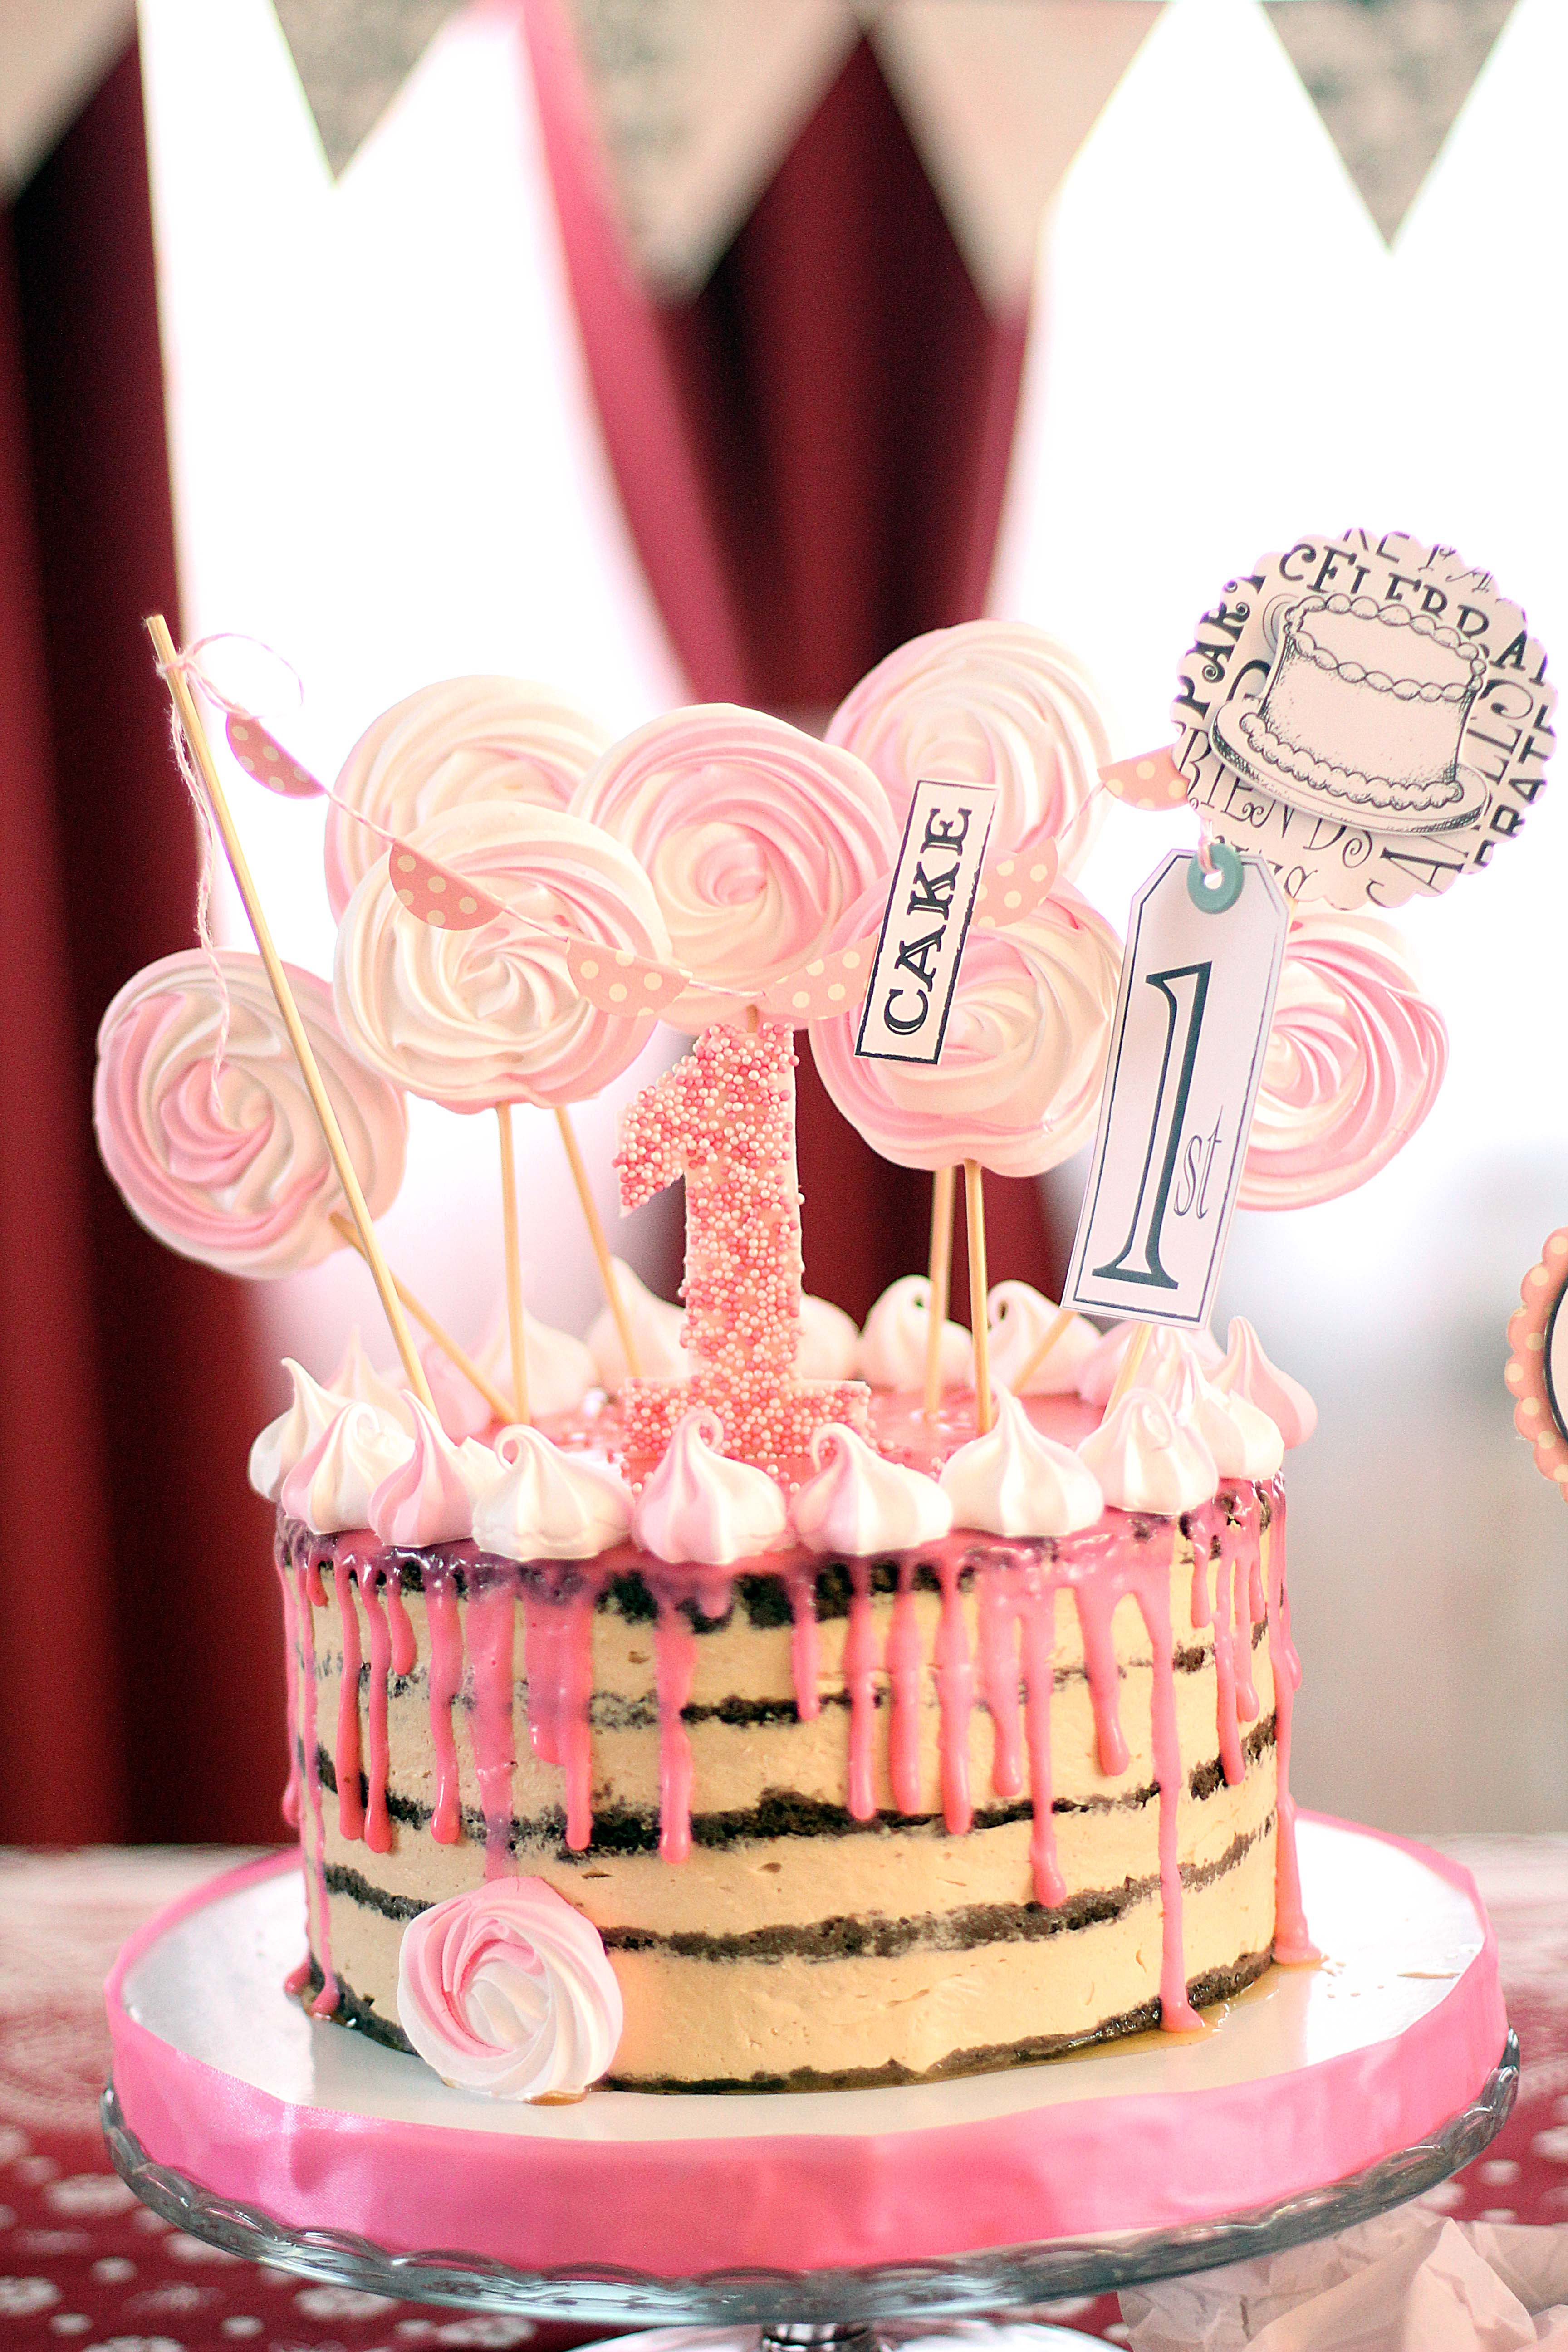 Baby Girl Birthday Cake 1st Birthday Diy Party Ideas And Crafting For Your Ba Girl The